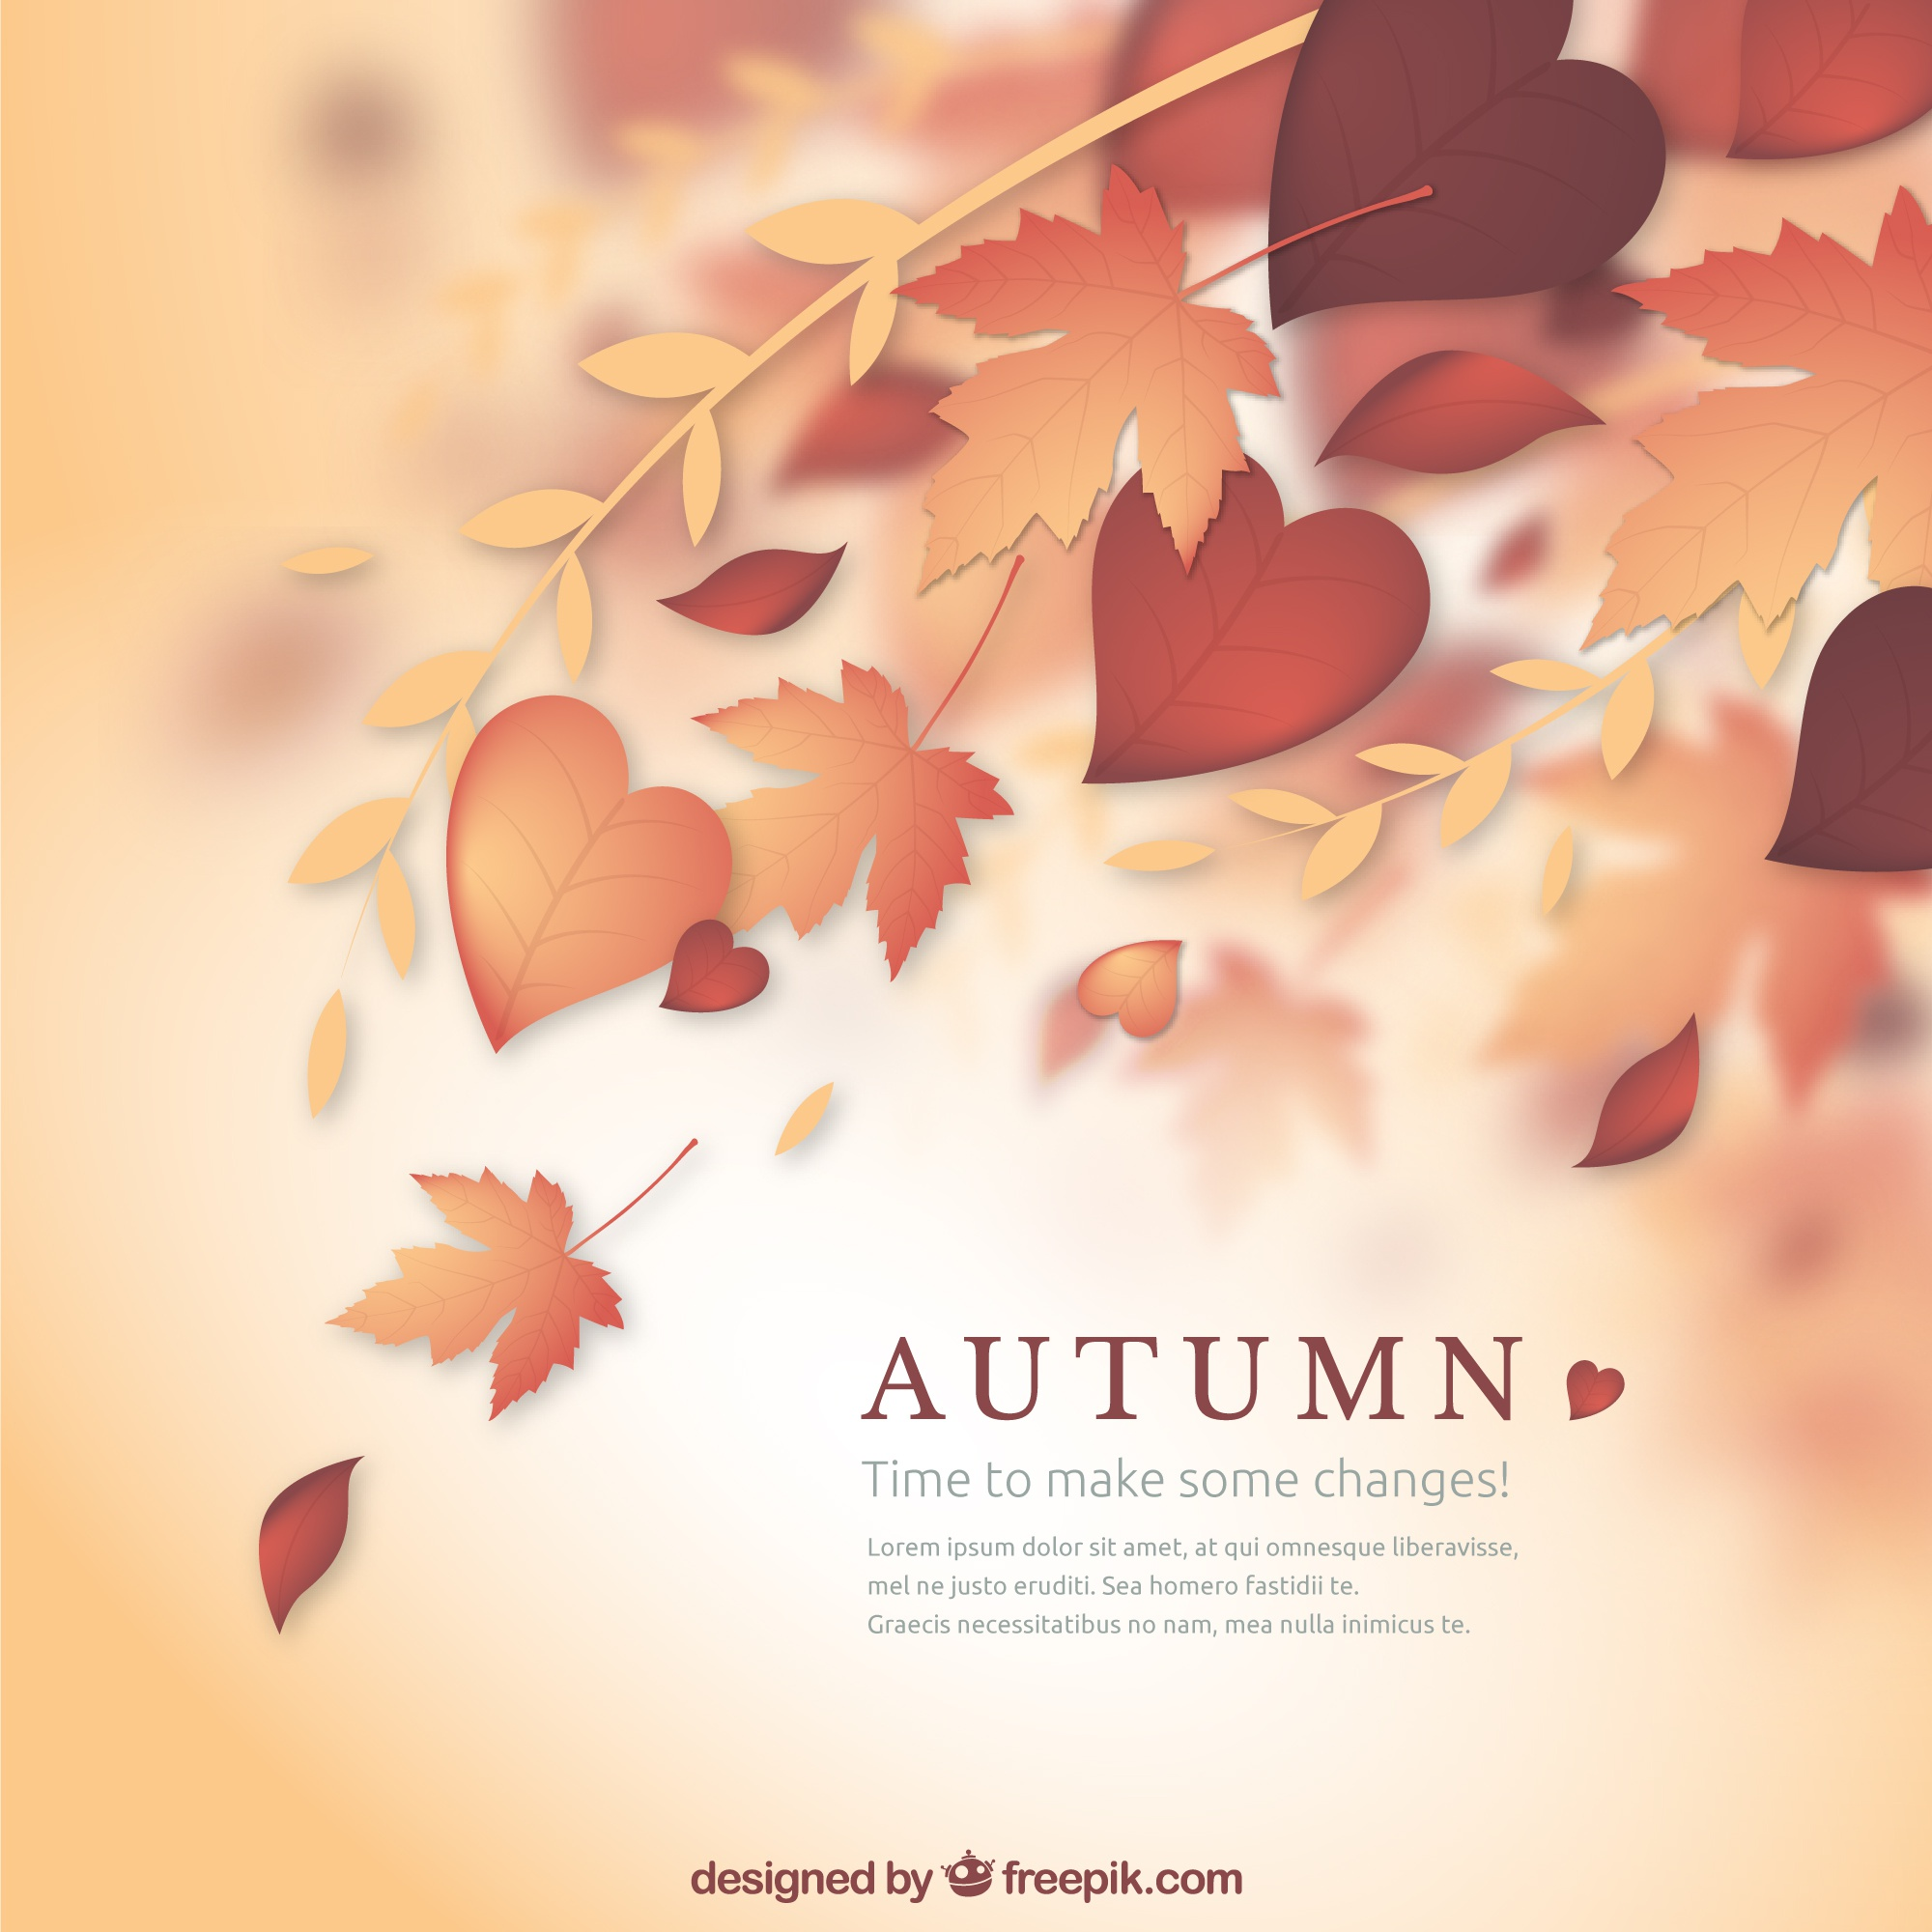 Natural autumn background